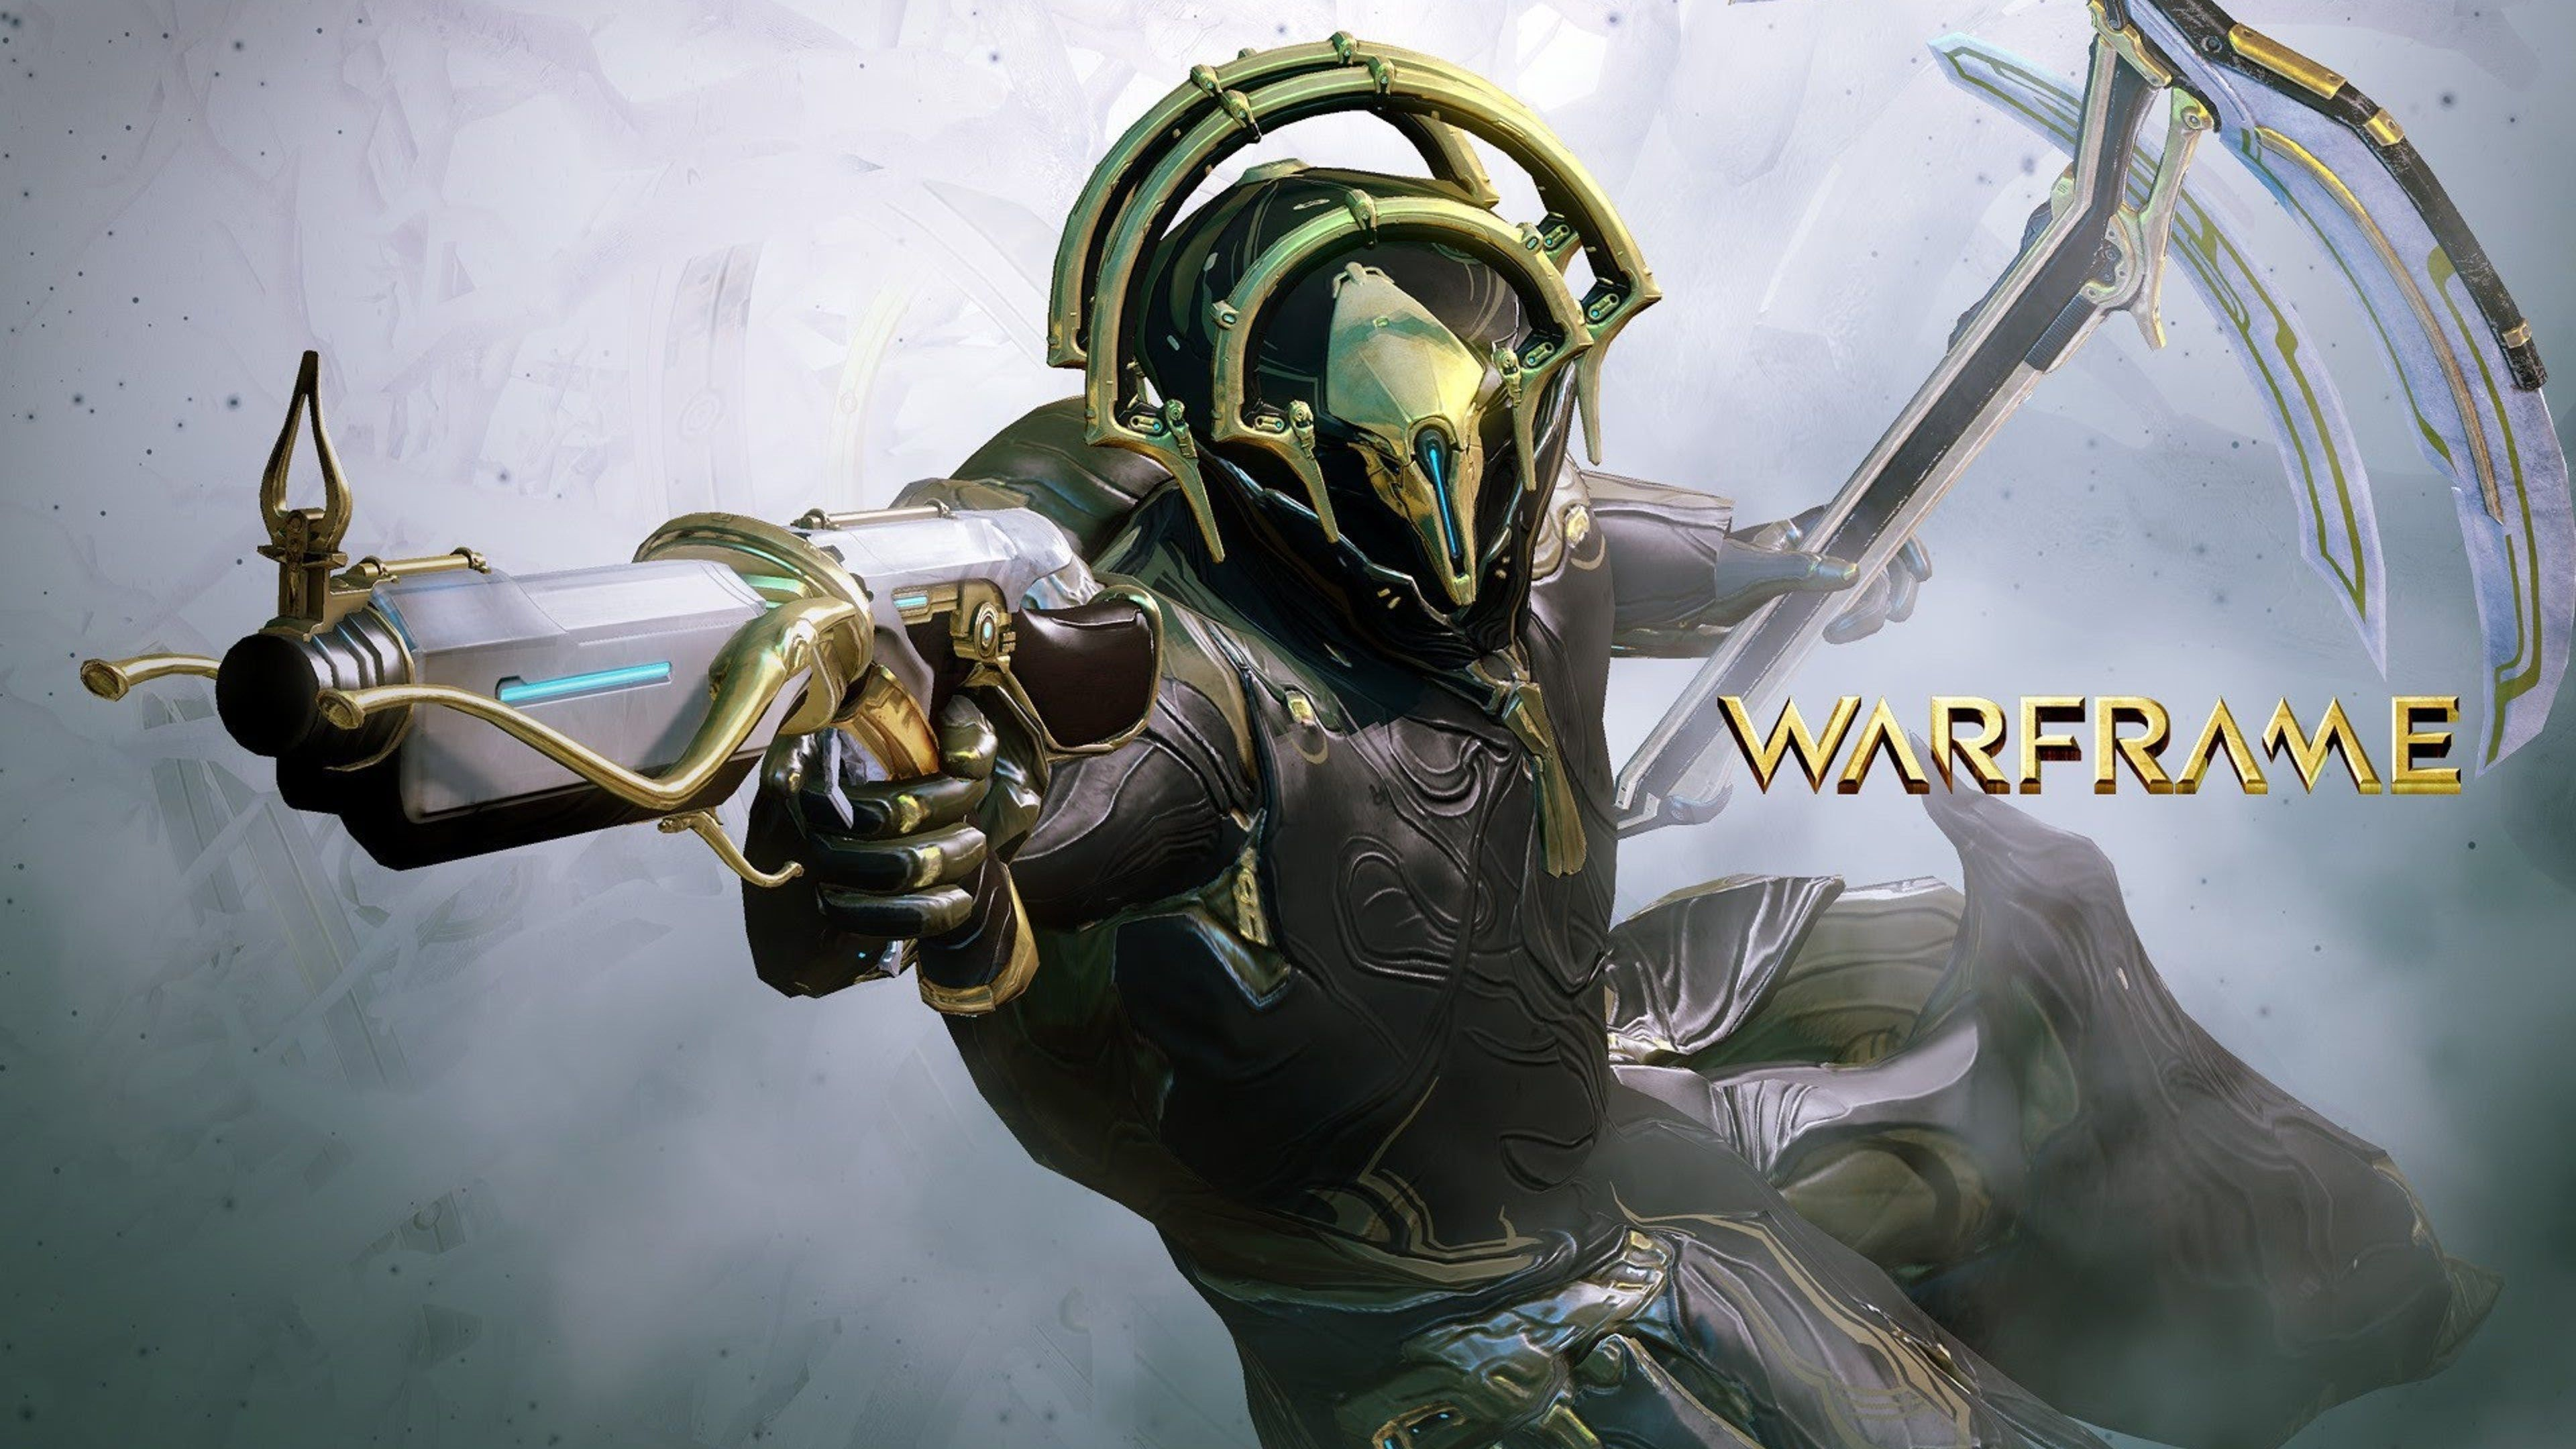 Warframe Game 4k Xbox Games Wallpapers Ps Games Wallpapers Pc Games Wallpapers Games Wallpapers Warframe Wallpaper Warframe Game Warframe Art